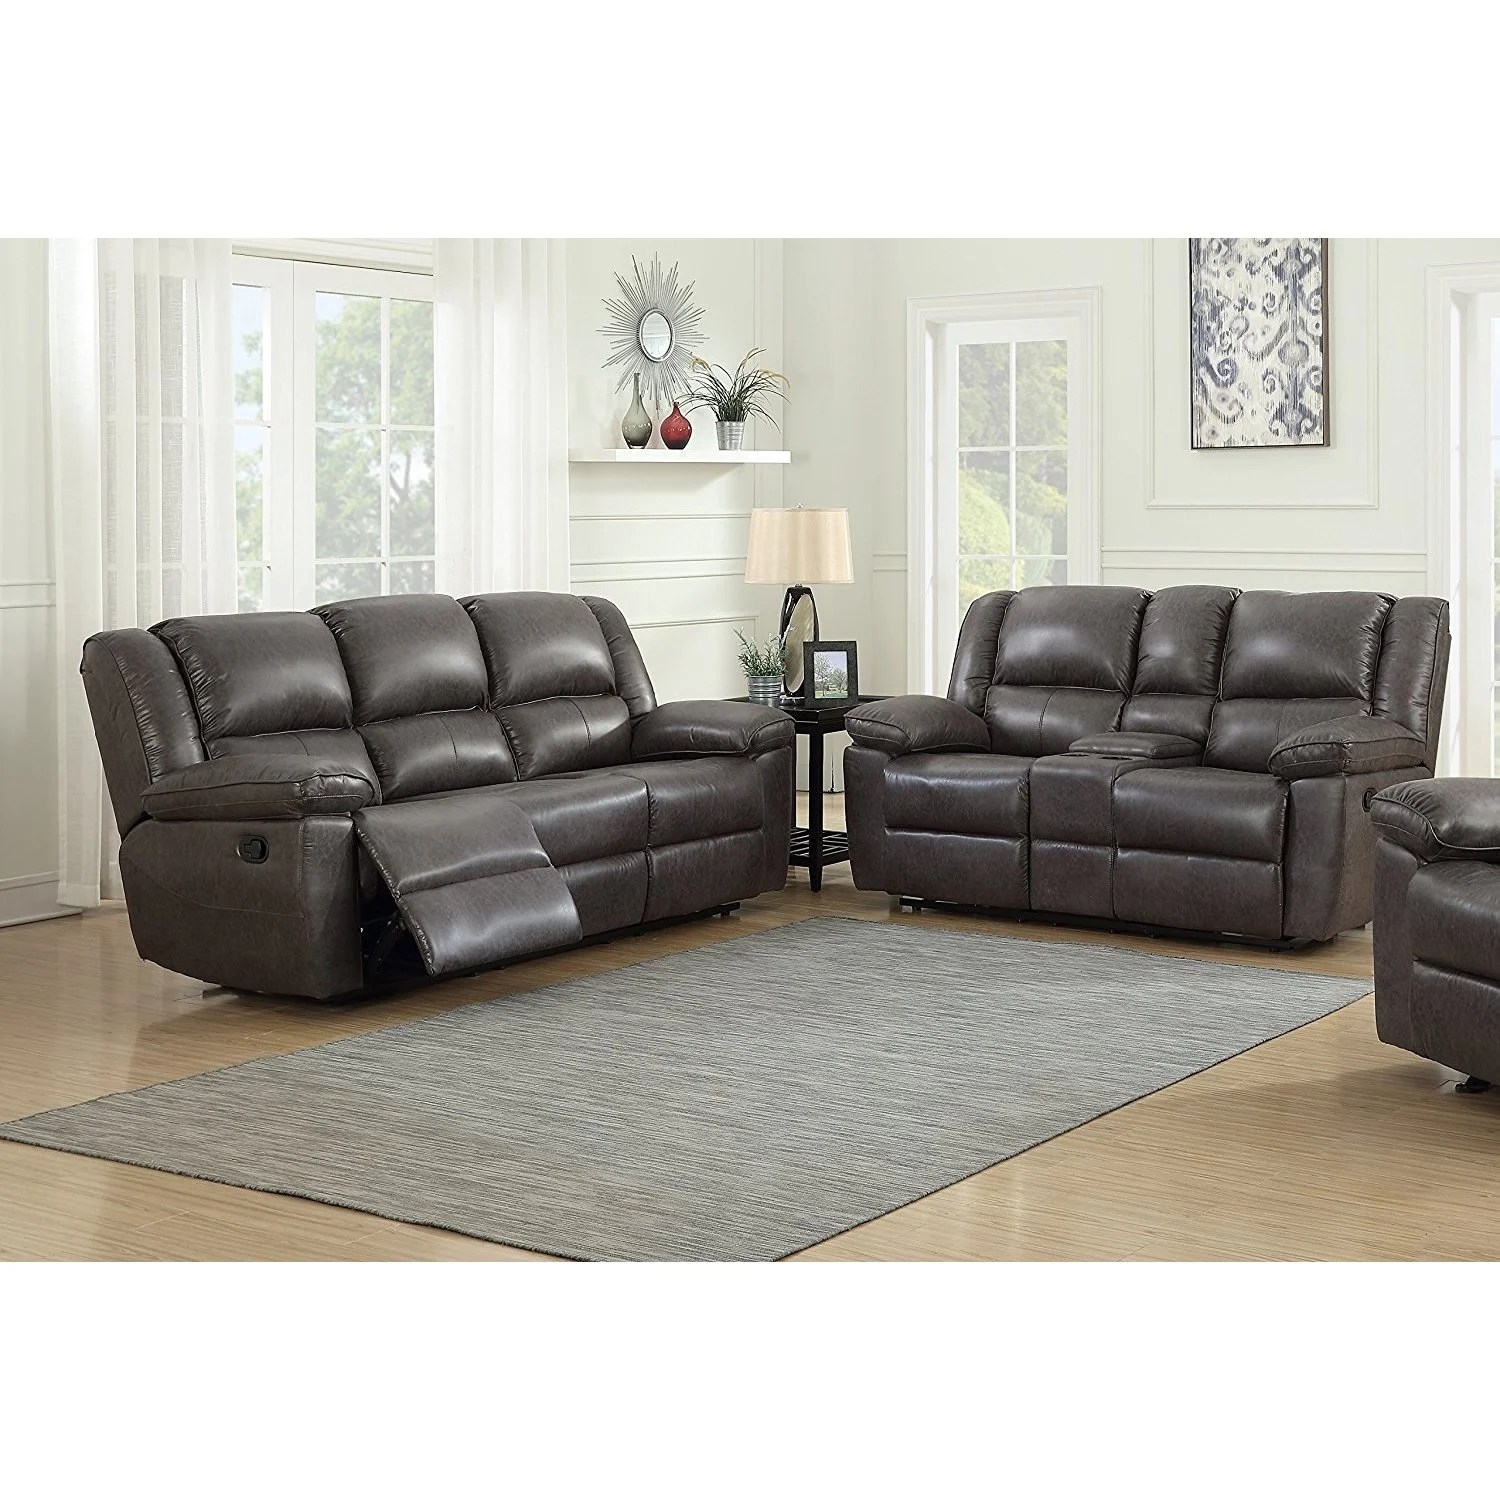 Us Pride Furniture Oregon Brown Hot Stamping Cloth Fabric 2 Piece Recliner Sofa And Console Loveseat Set